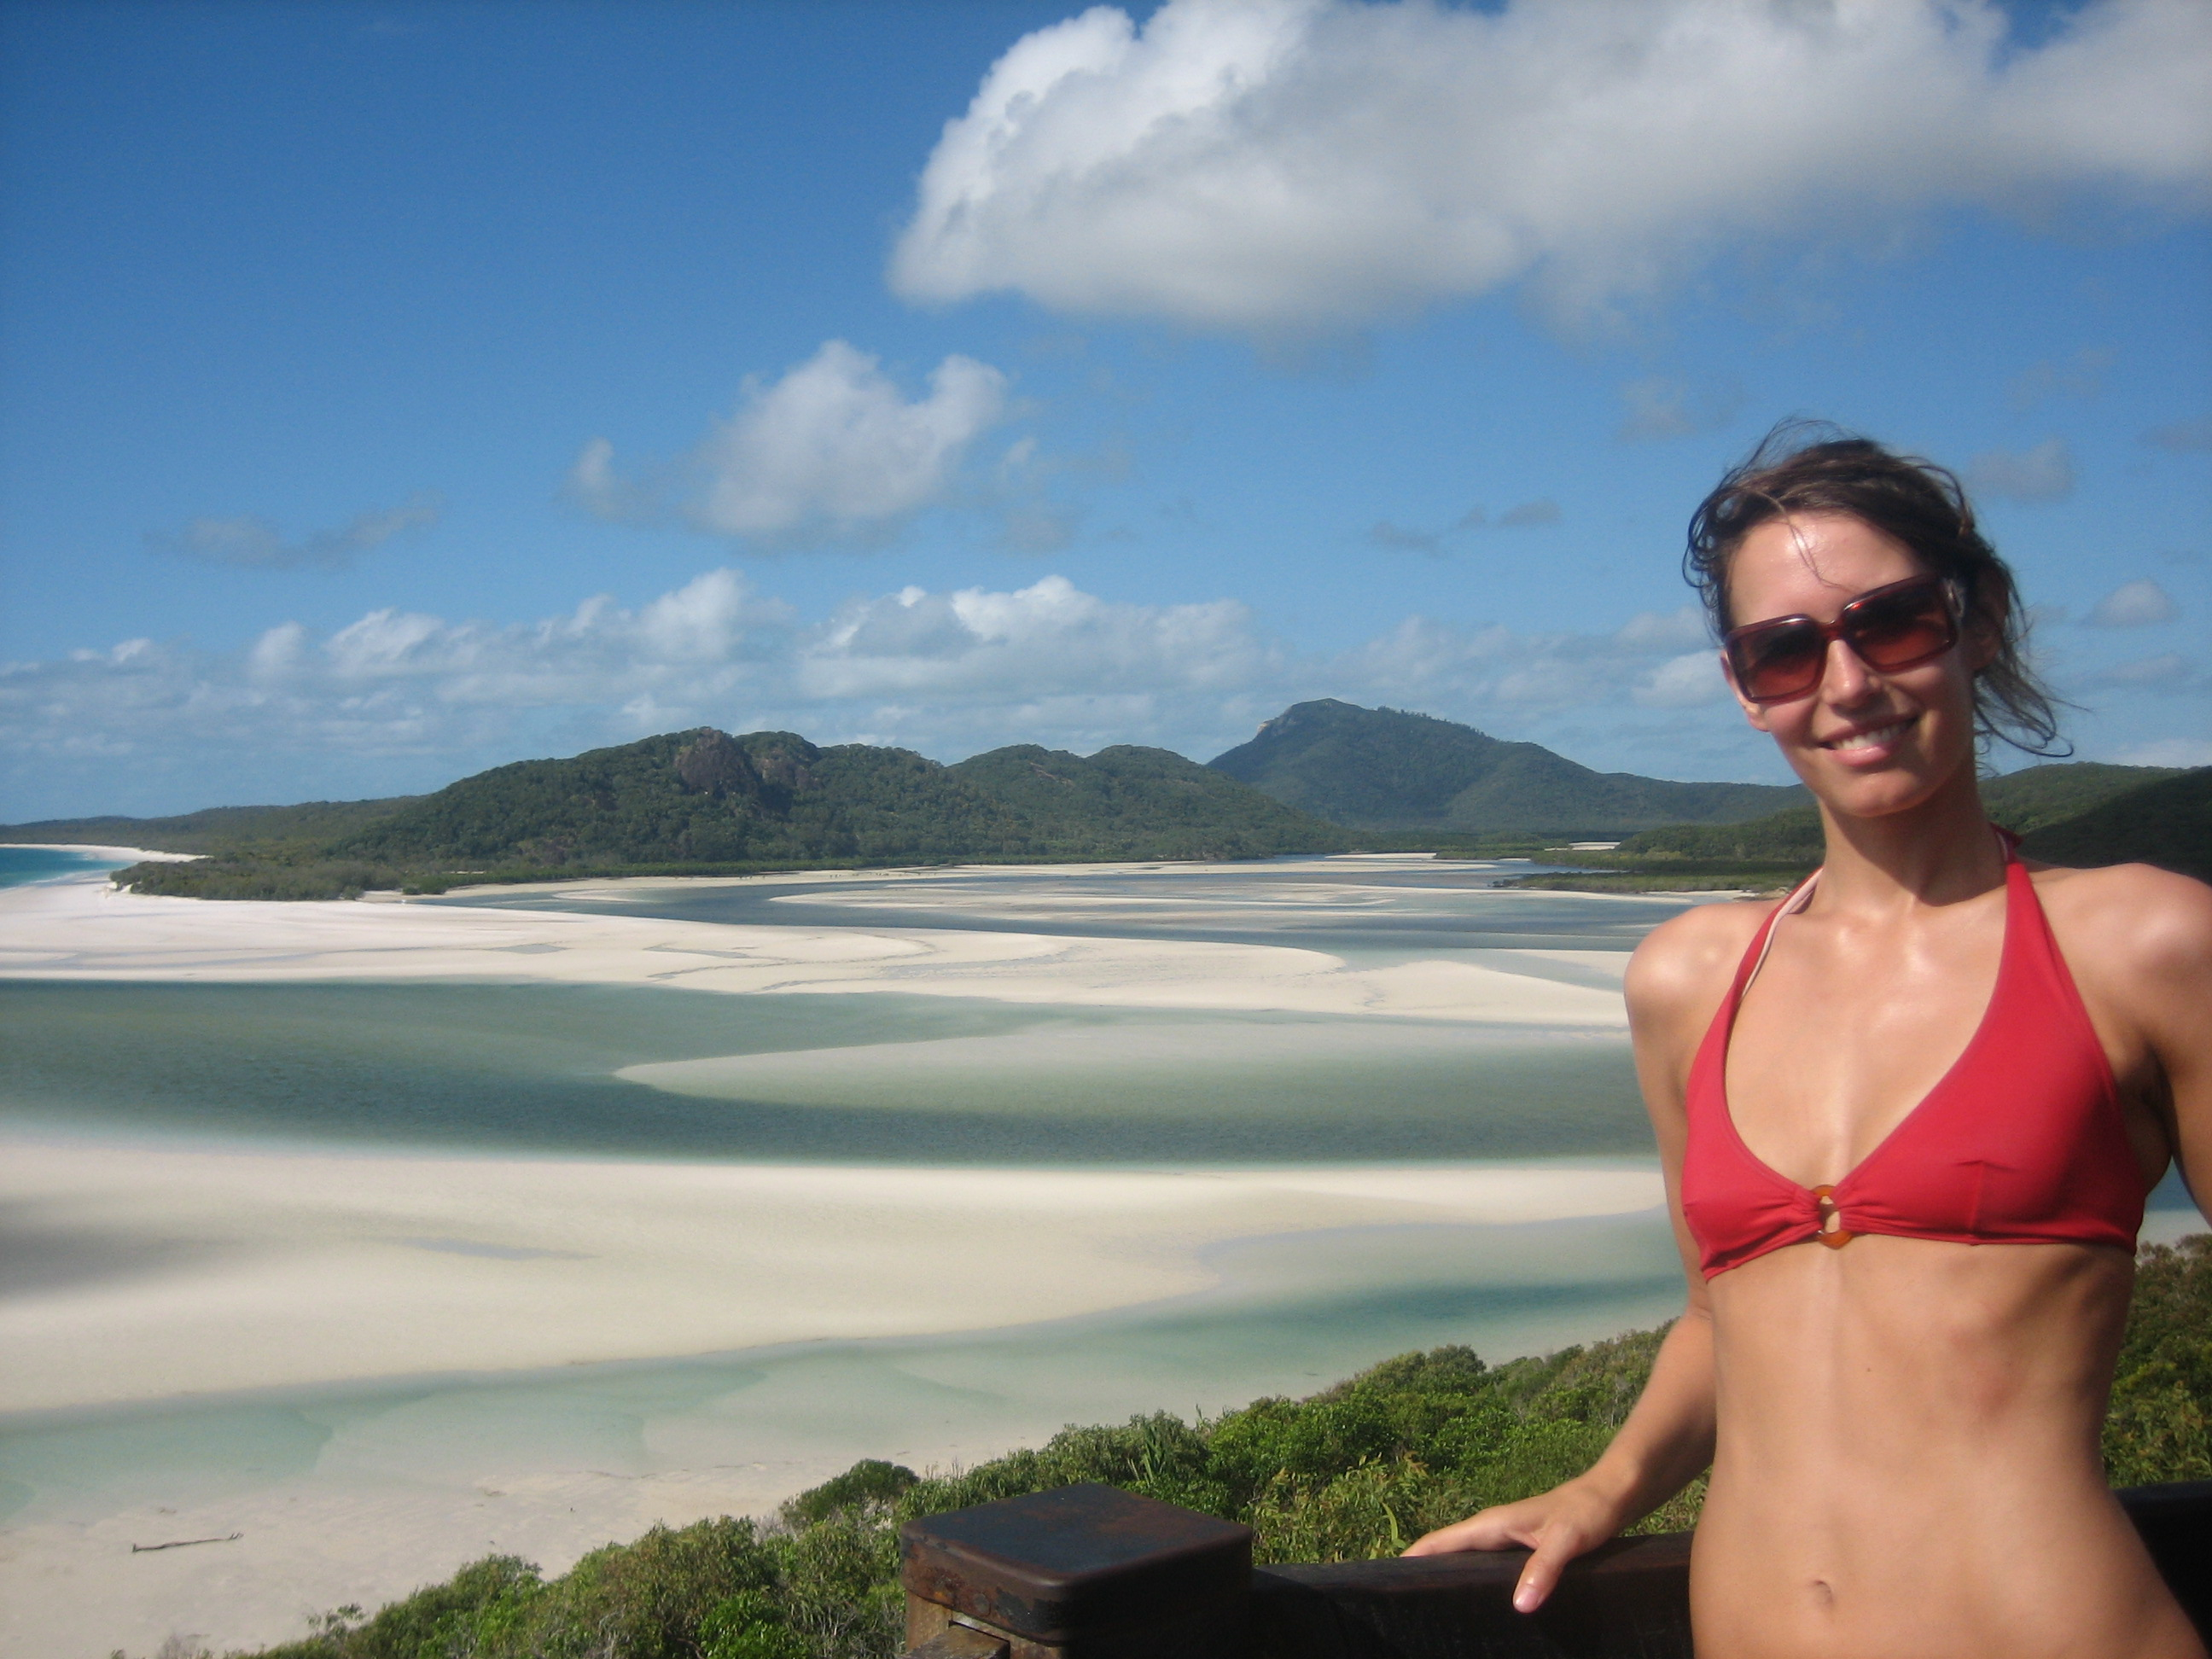 Whiteheaven Beach Whitsunday Islands Queensland Australia